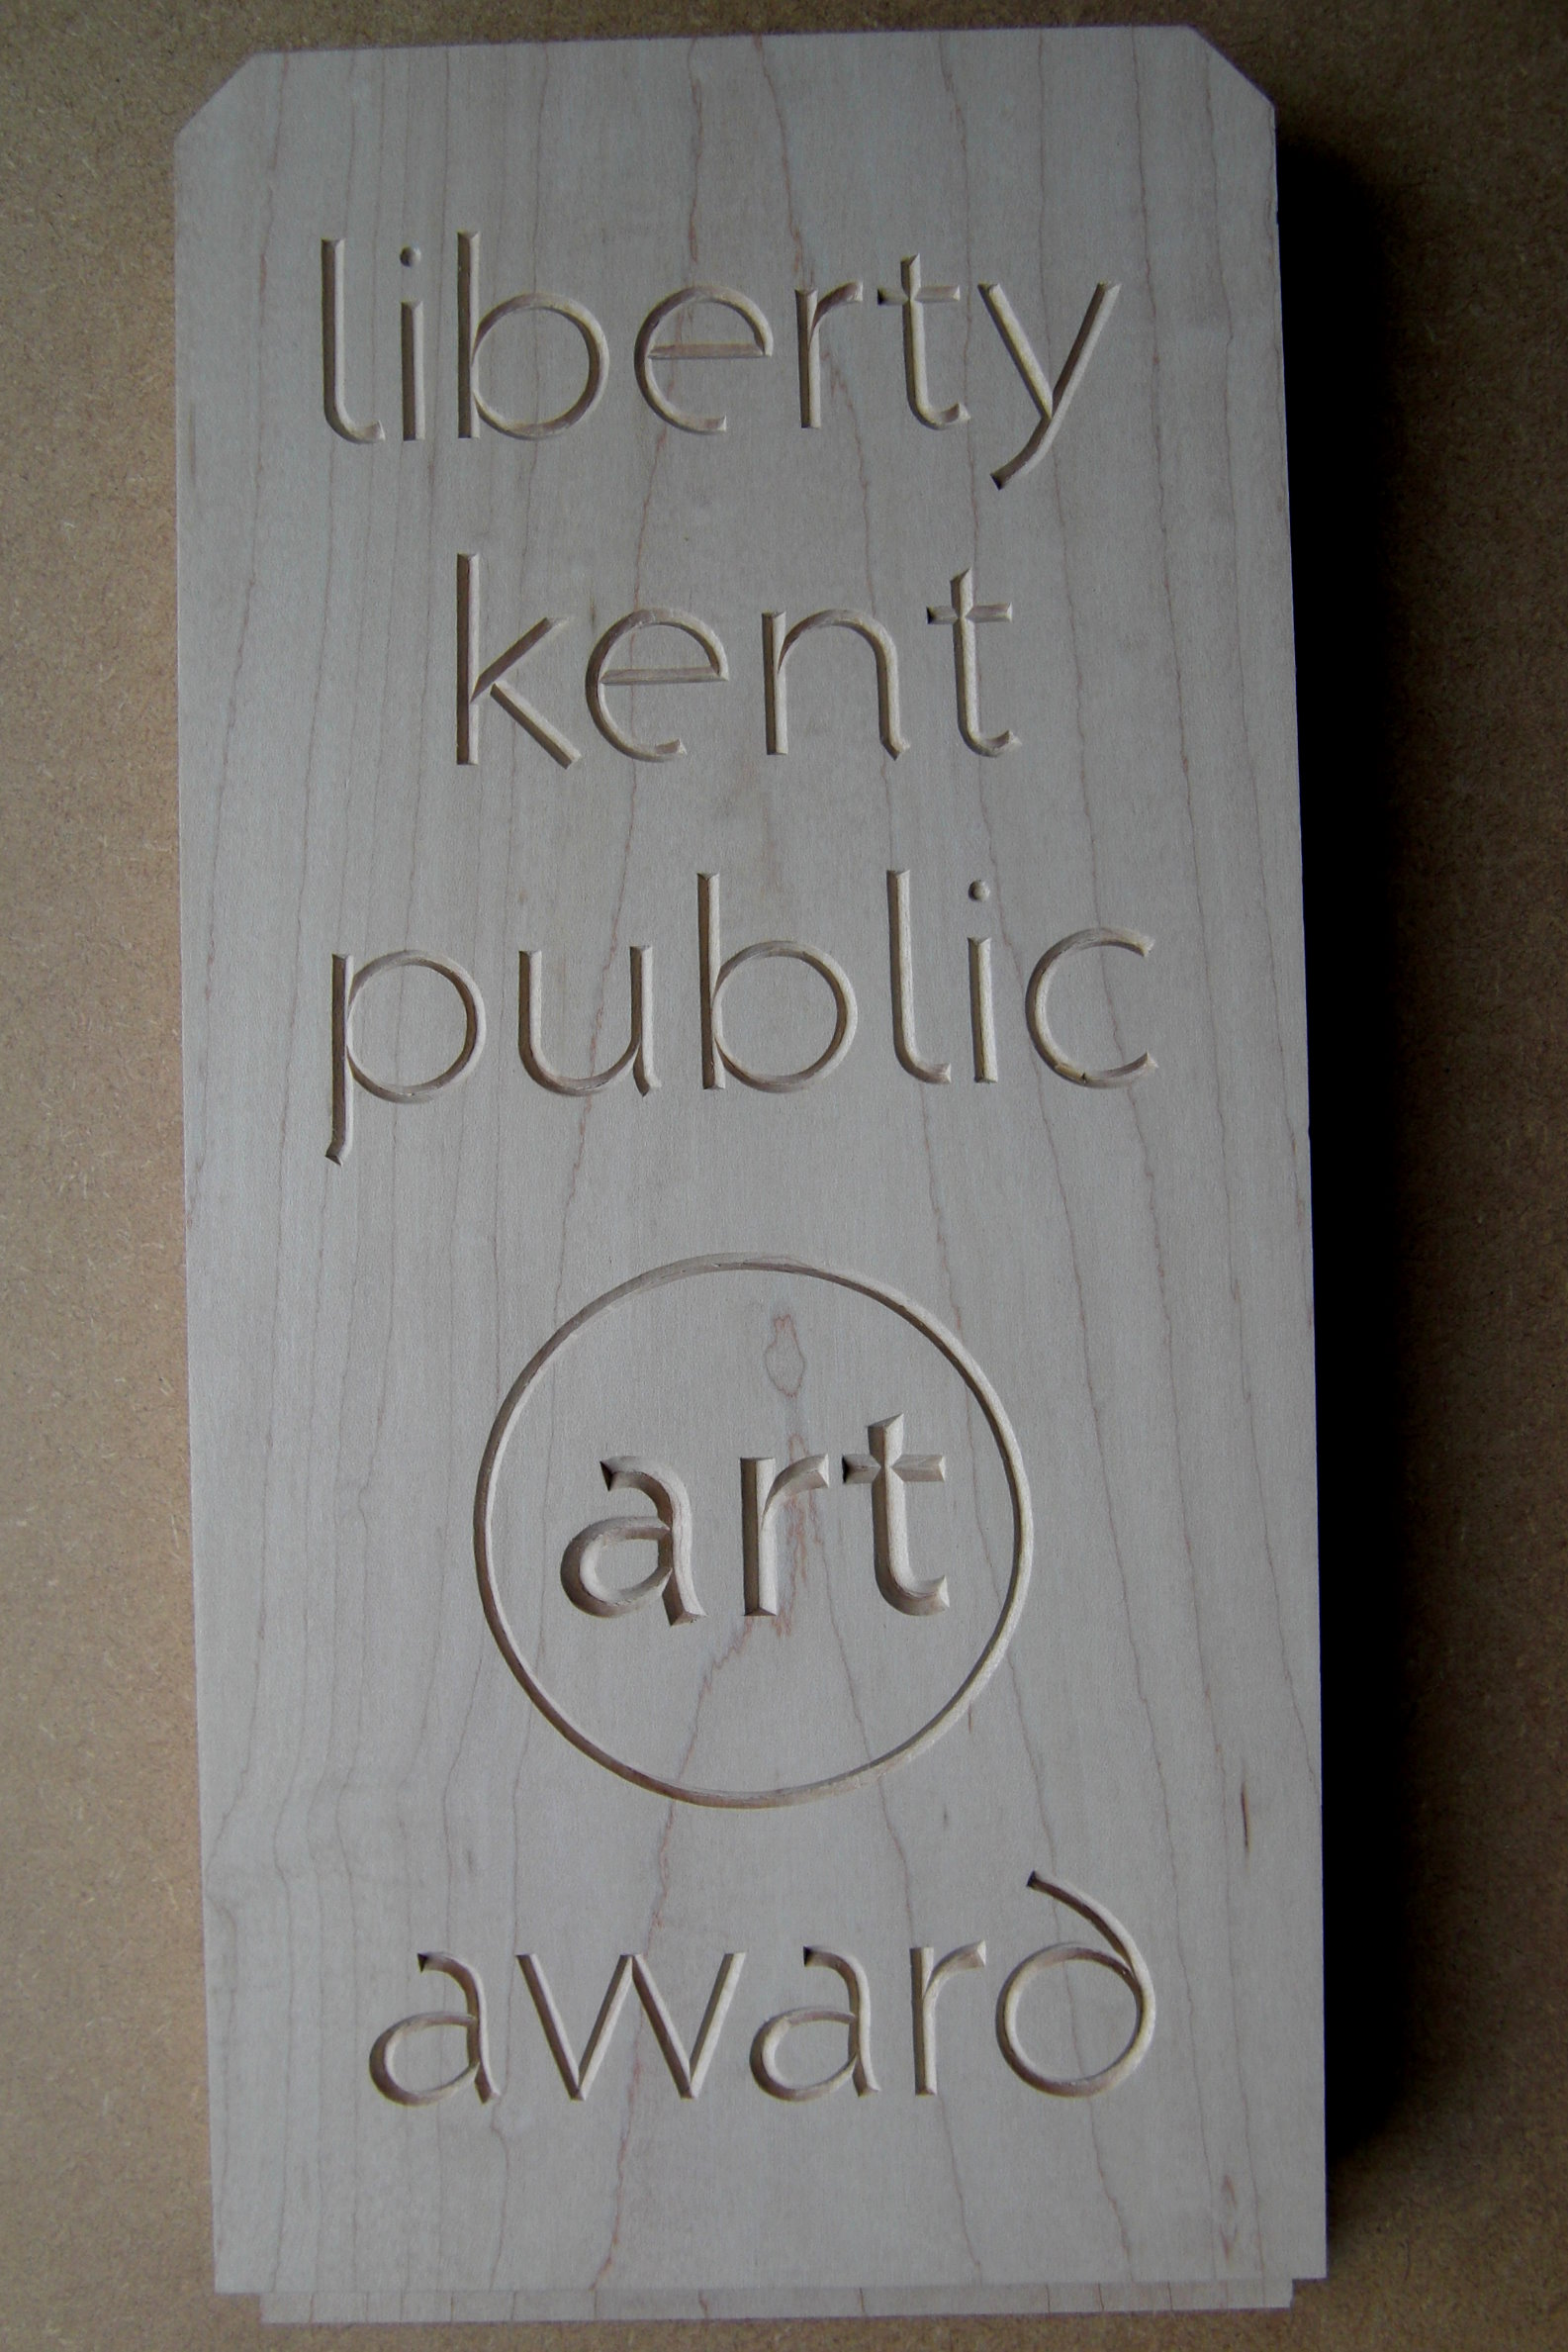 Carved lettering for art award, in maple wood